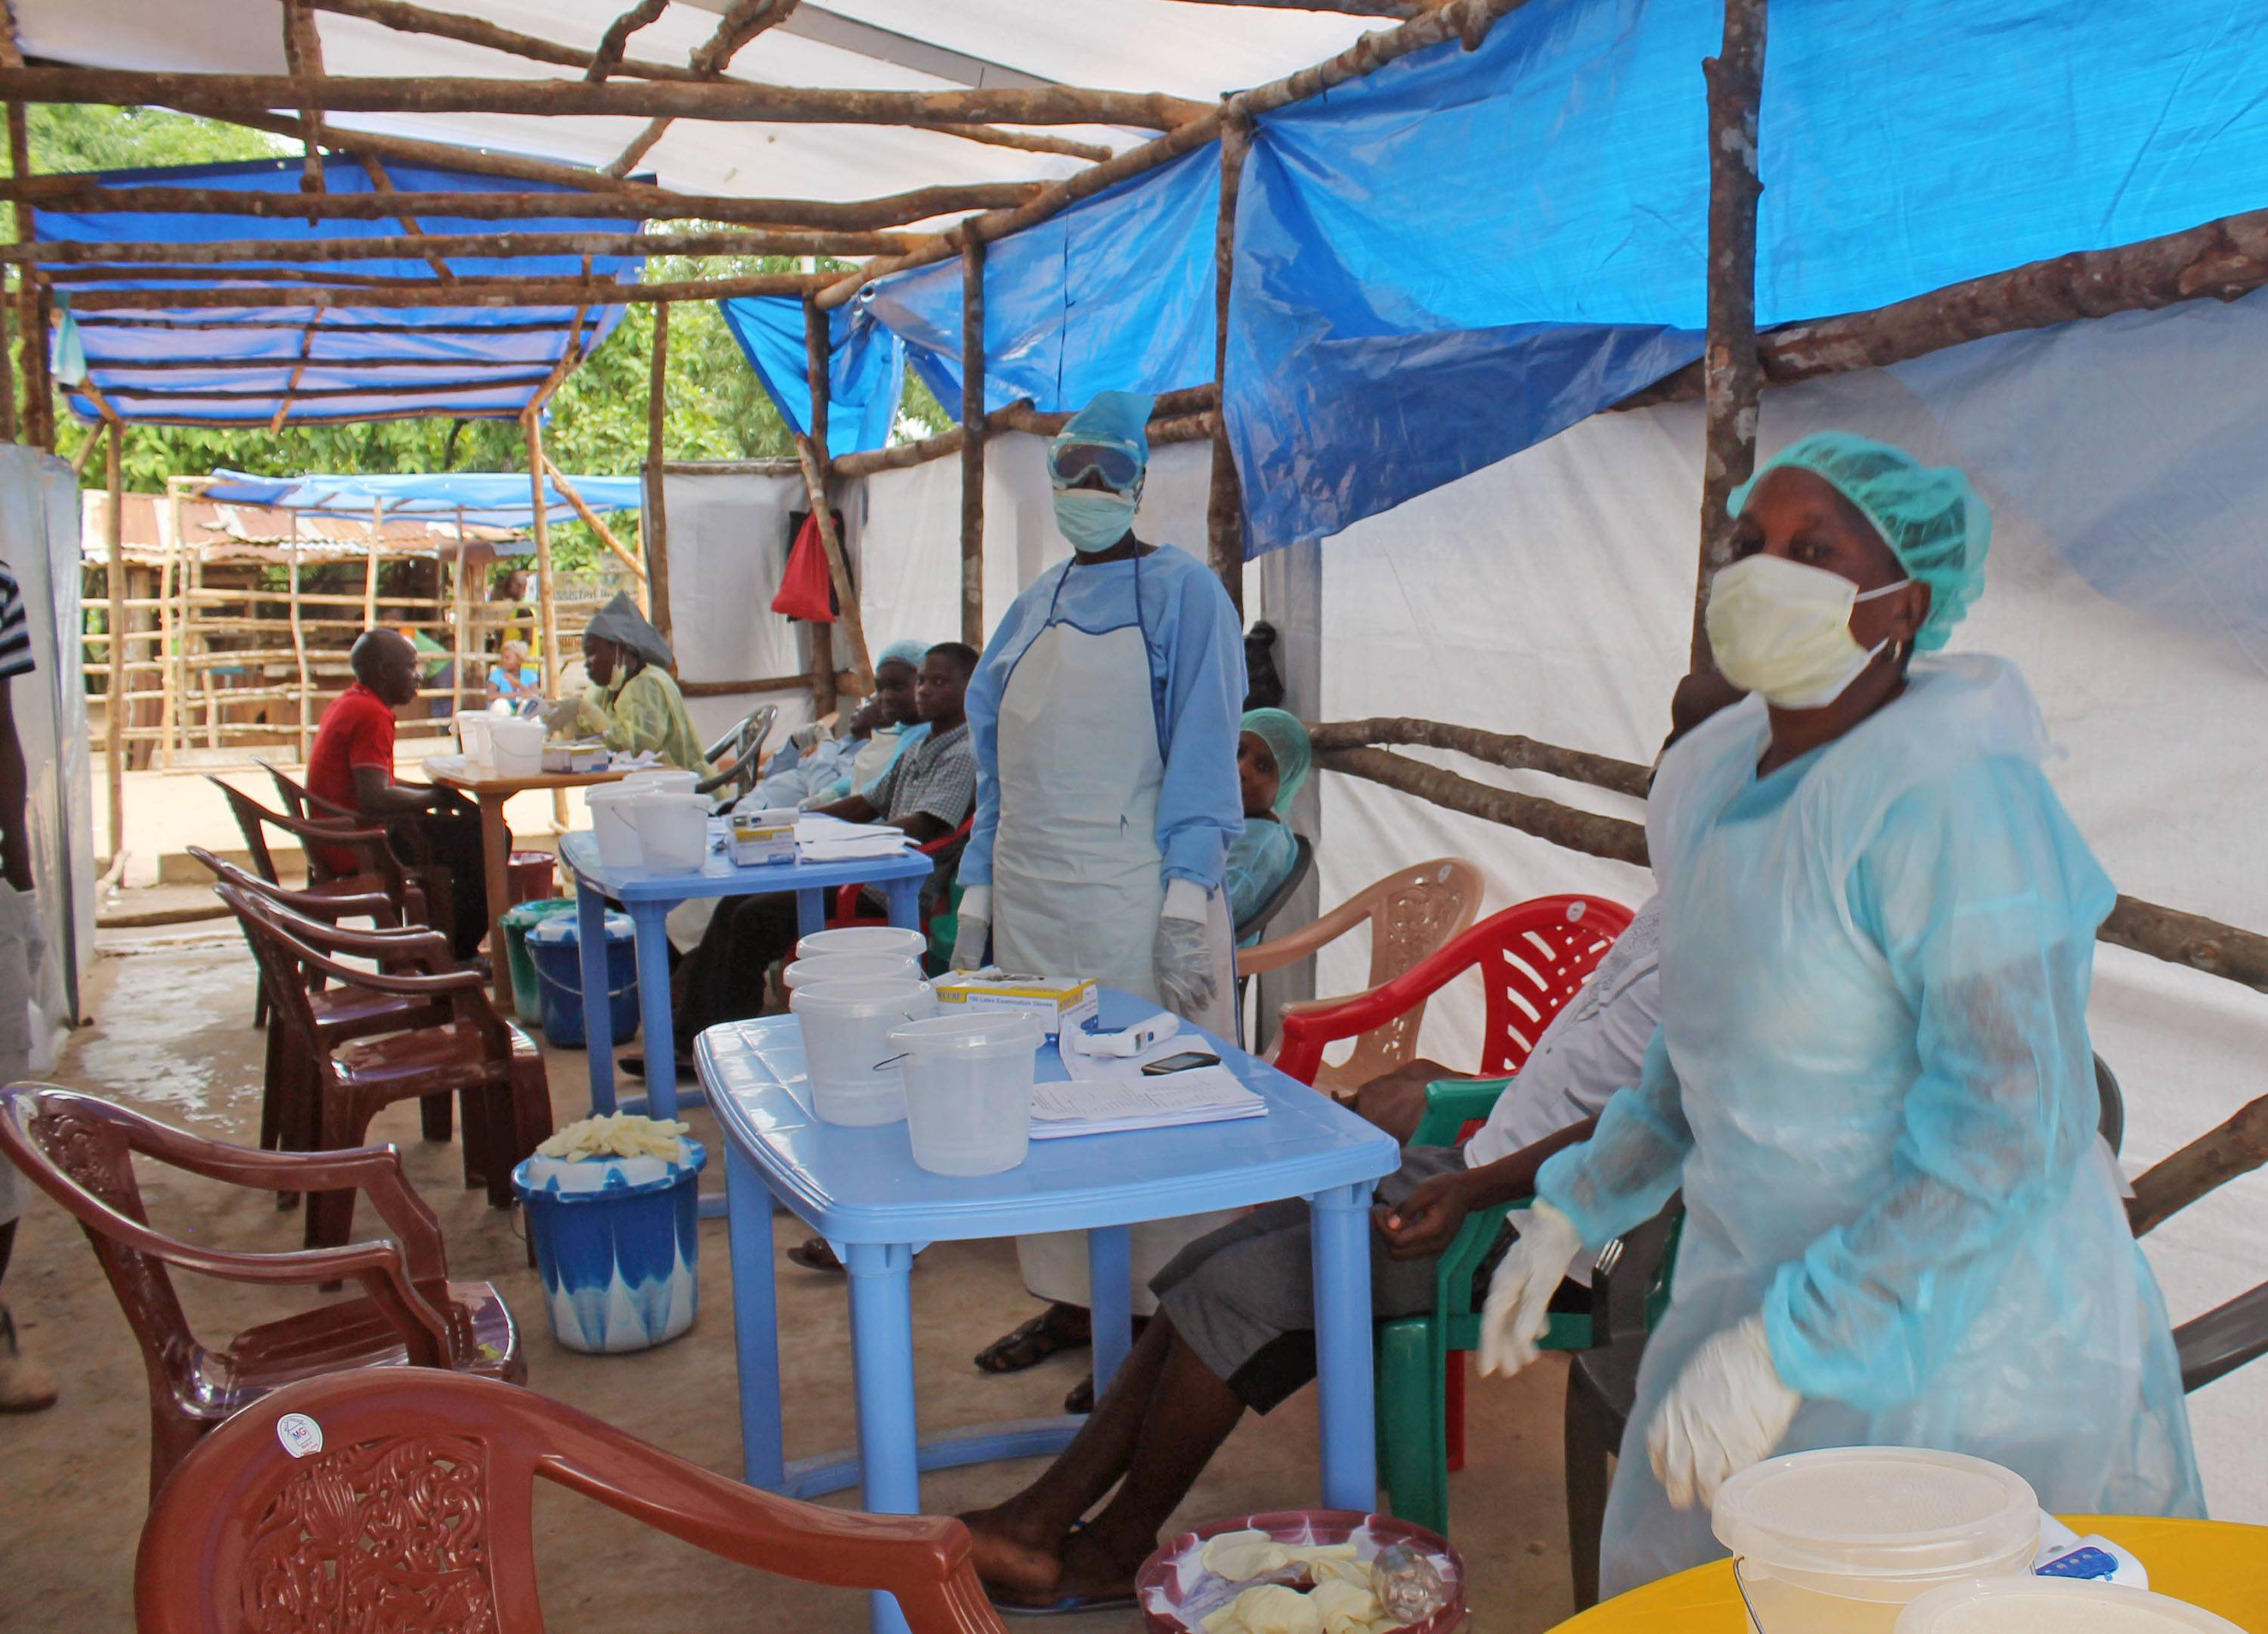 In this photo taken on Sunday, medical personnel work inside a clinic taking care of Ebola patients on the outskirts of Kenema, Sierra Leone. Liberian President Ellen Johnson Sirleaf has closed some border crossings and ordered strict quarantines of communities affected by the Ebola outbreak.